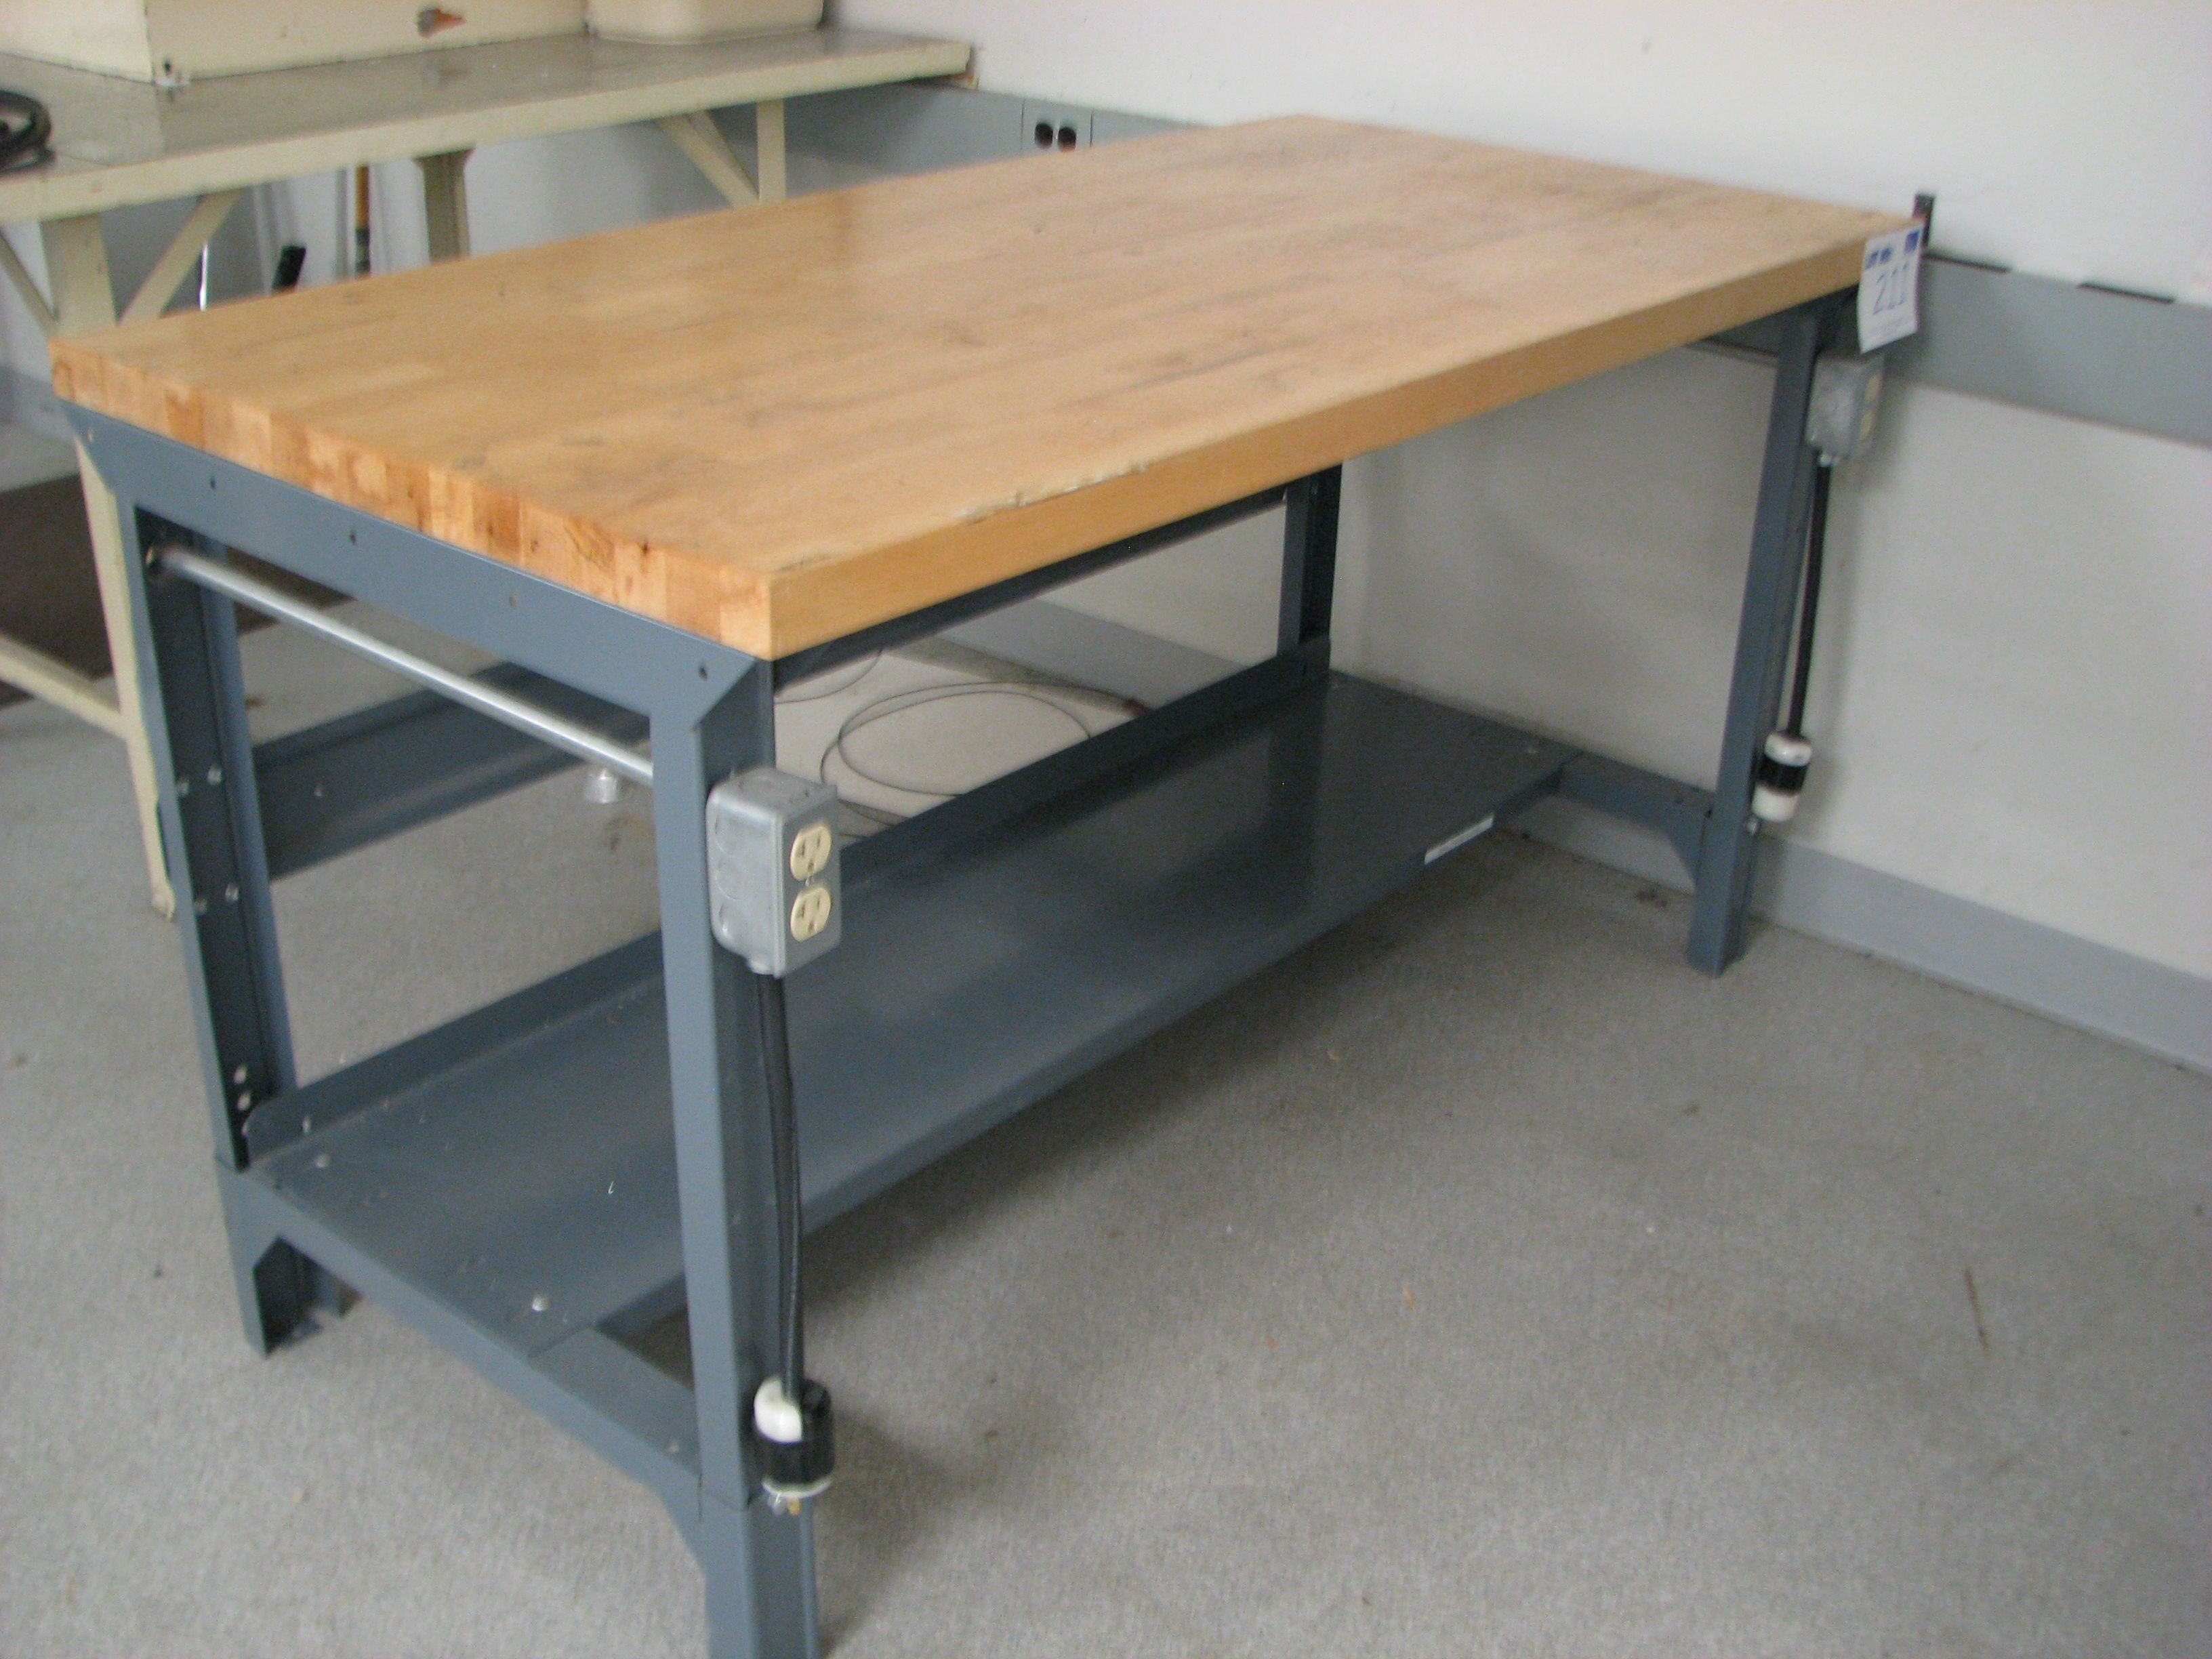 Butcher Block Workbench >> 6 Foot Long Butcher Block Top Workbench W Built In Power Outlets